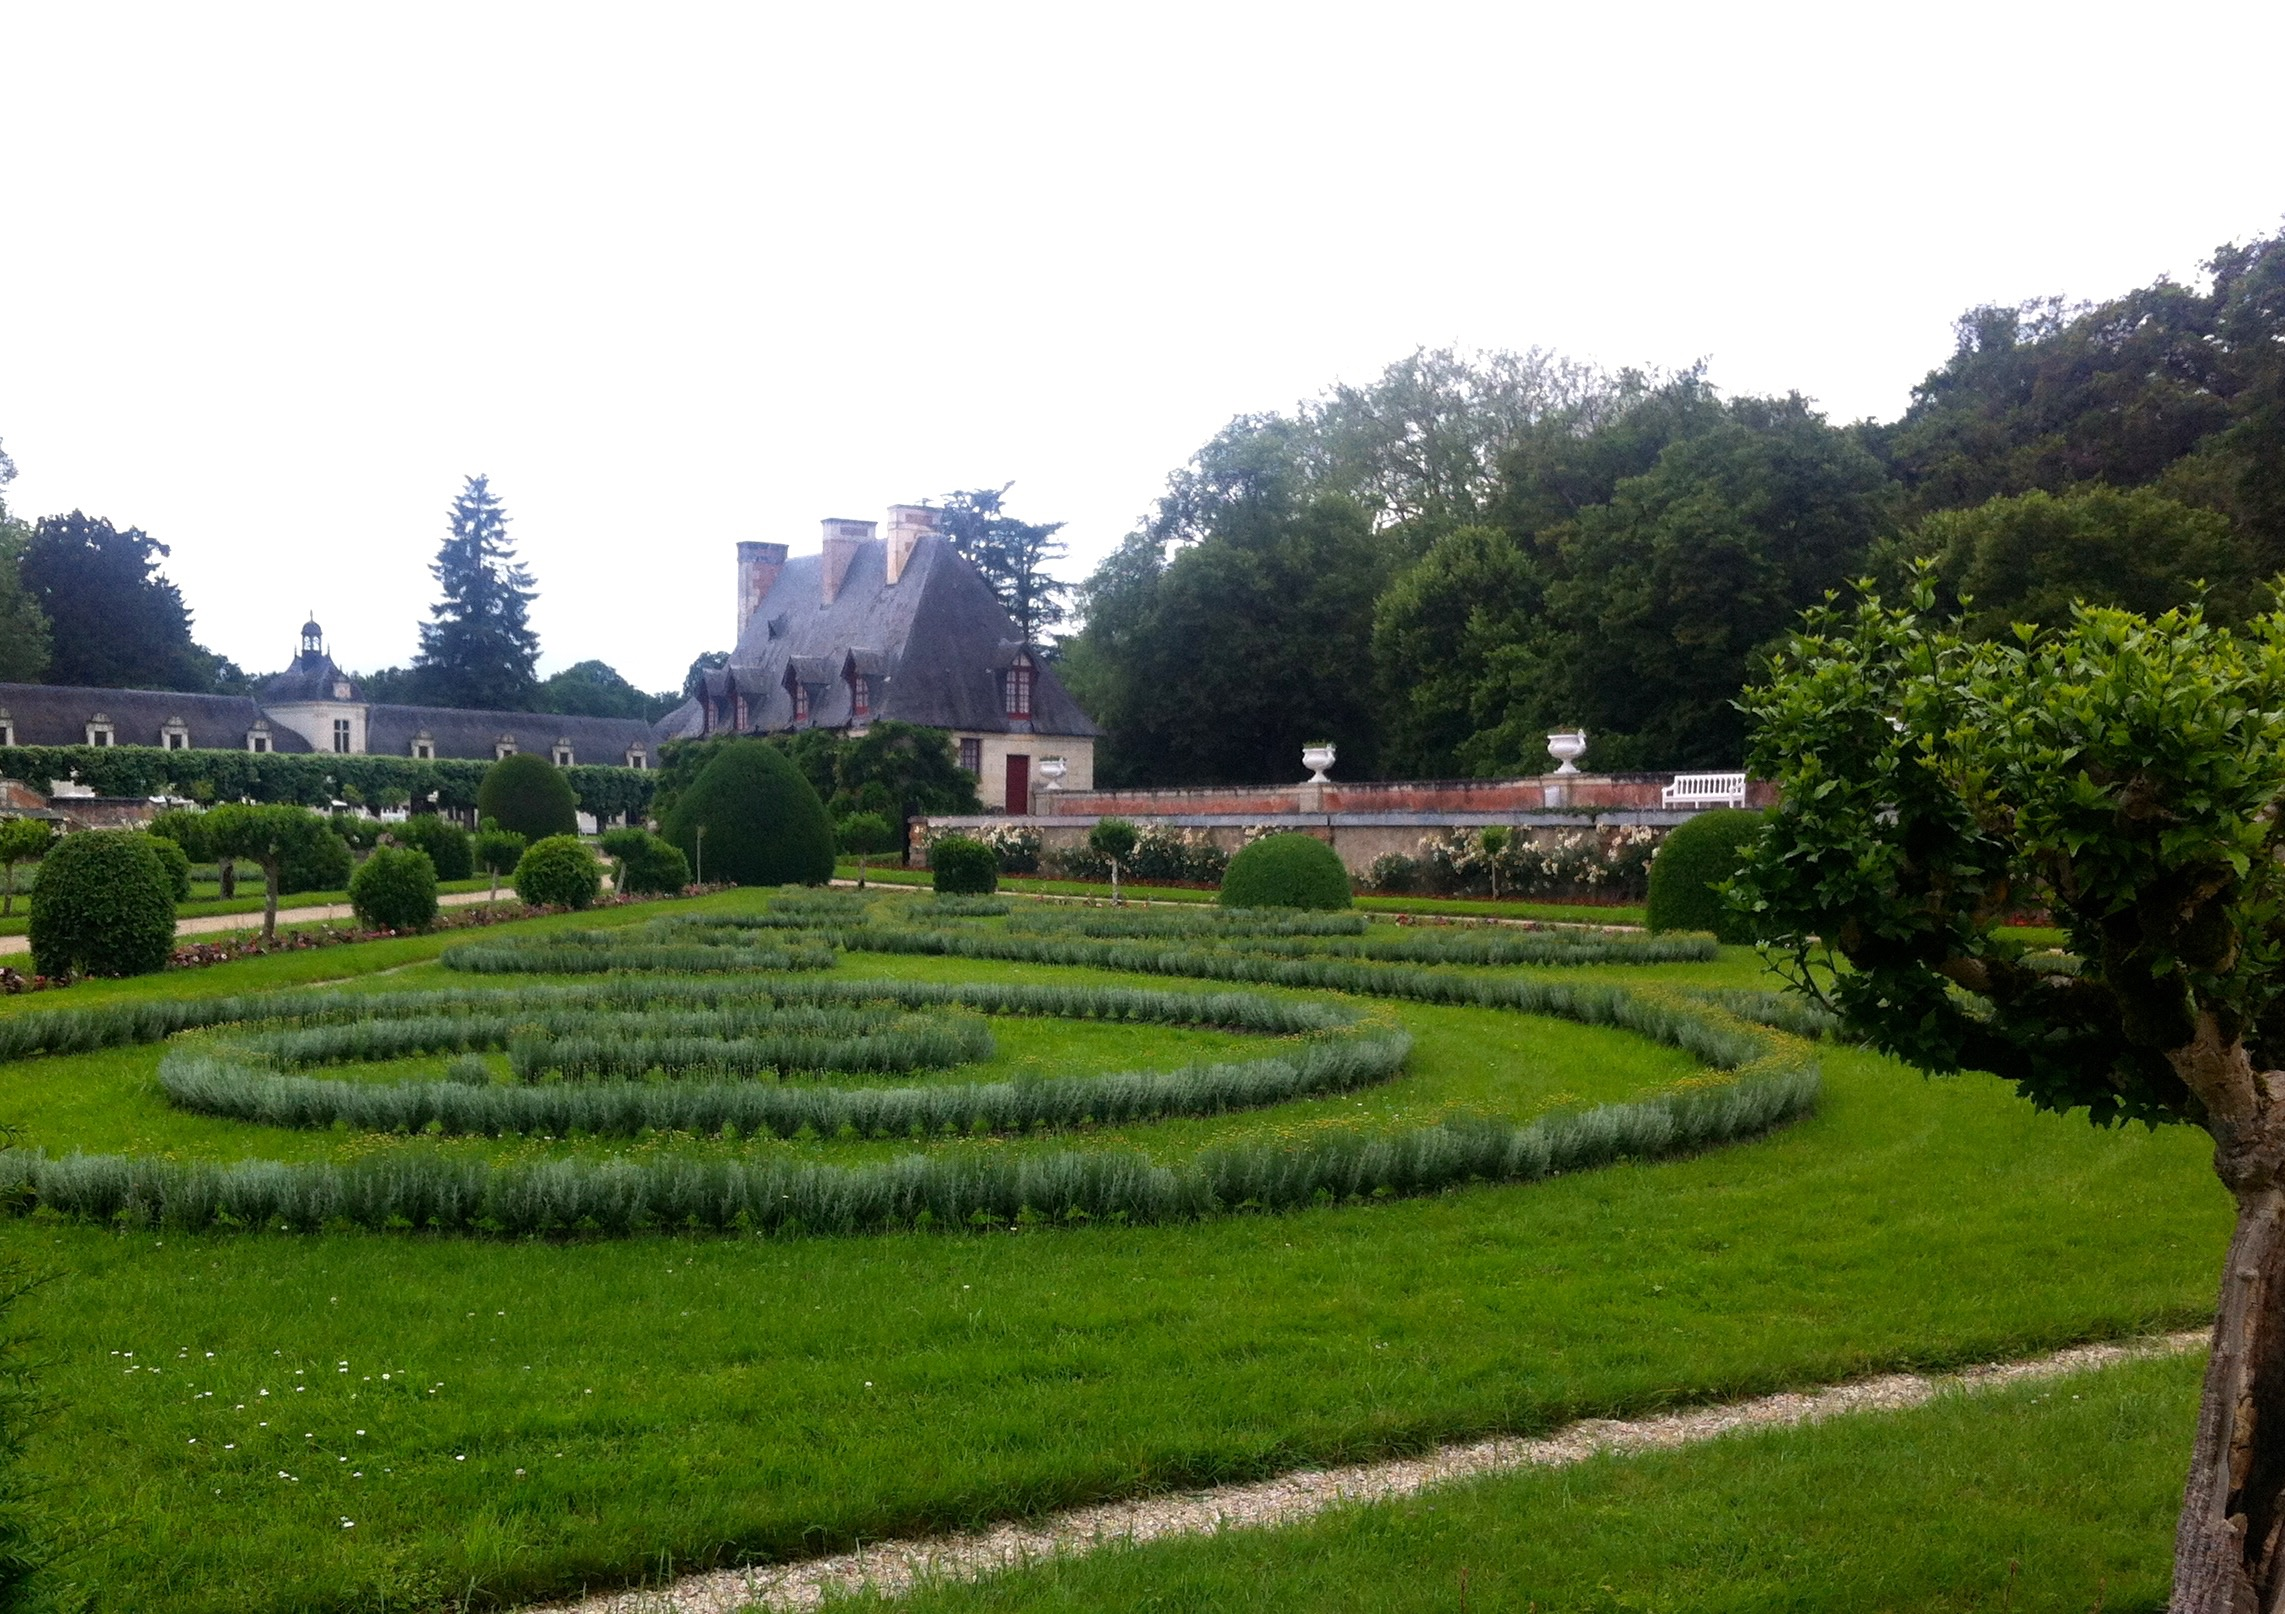 the shapes in the lawn are individual plants of santolini